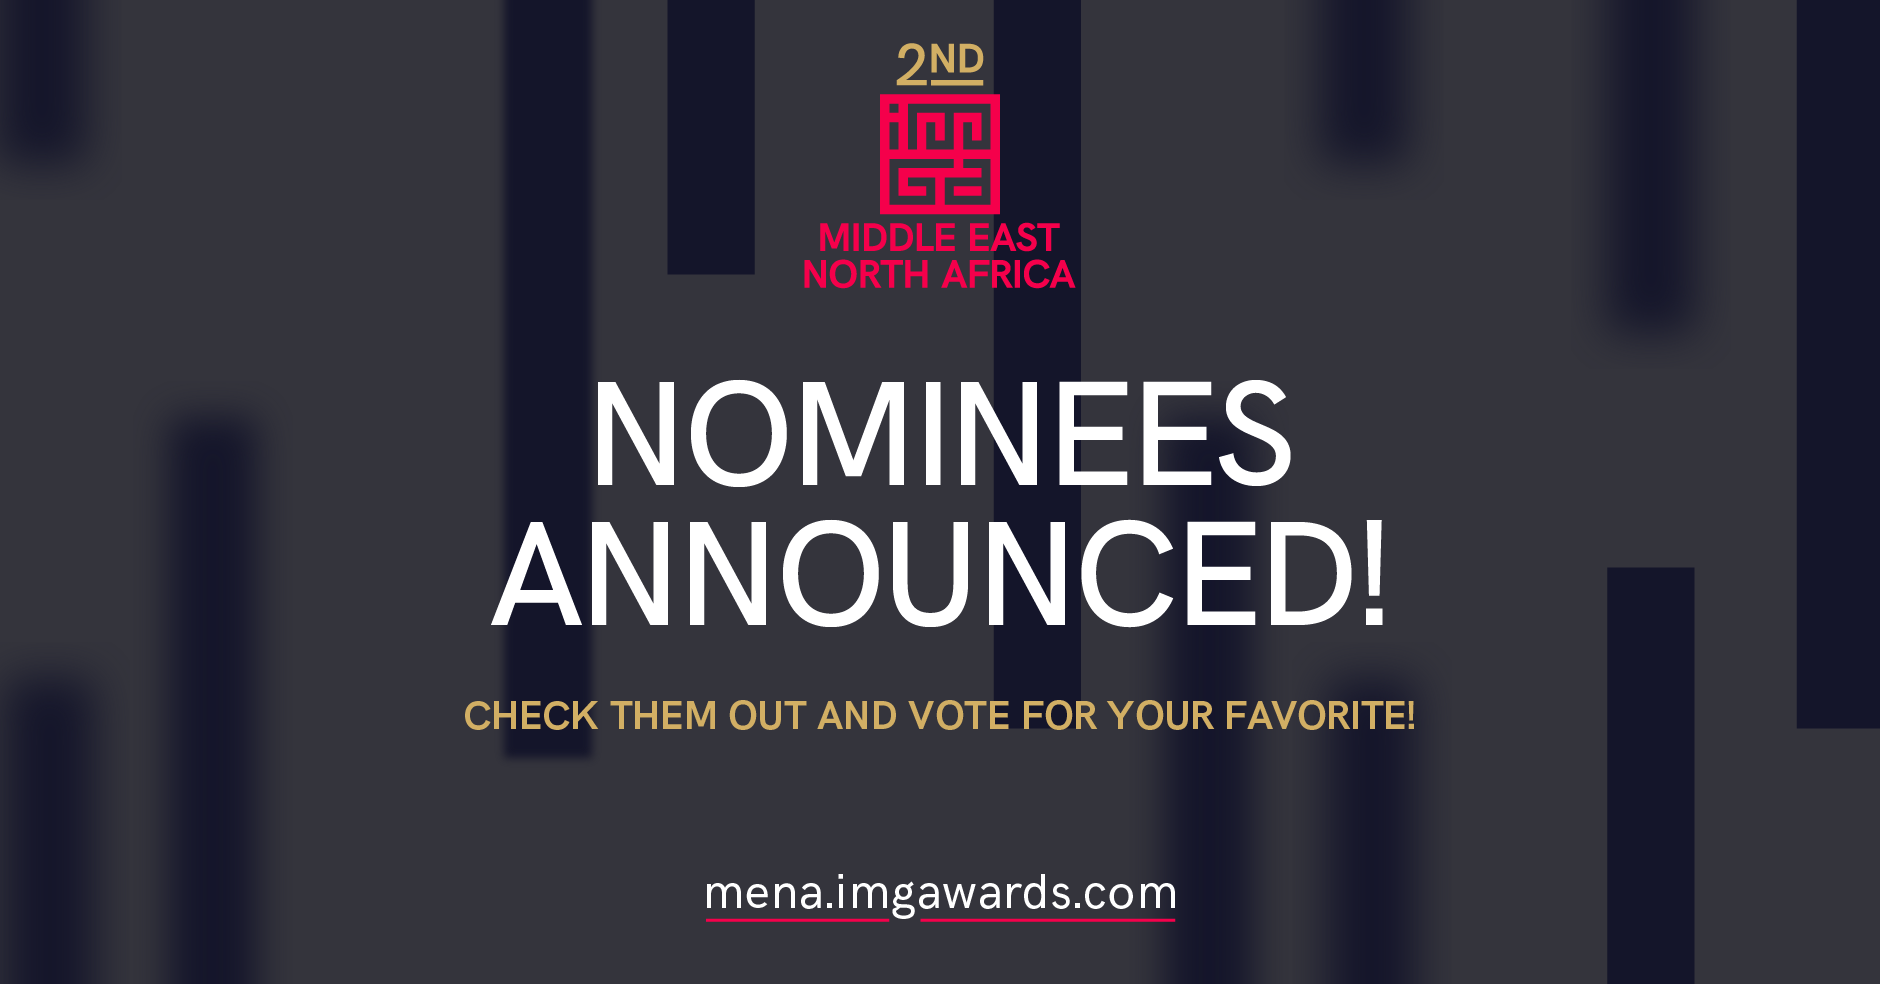 Nominations Announced For The 2nd IMGA MENA